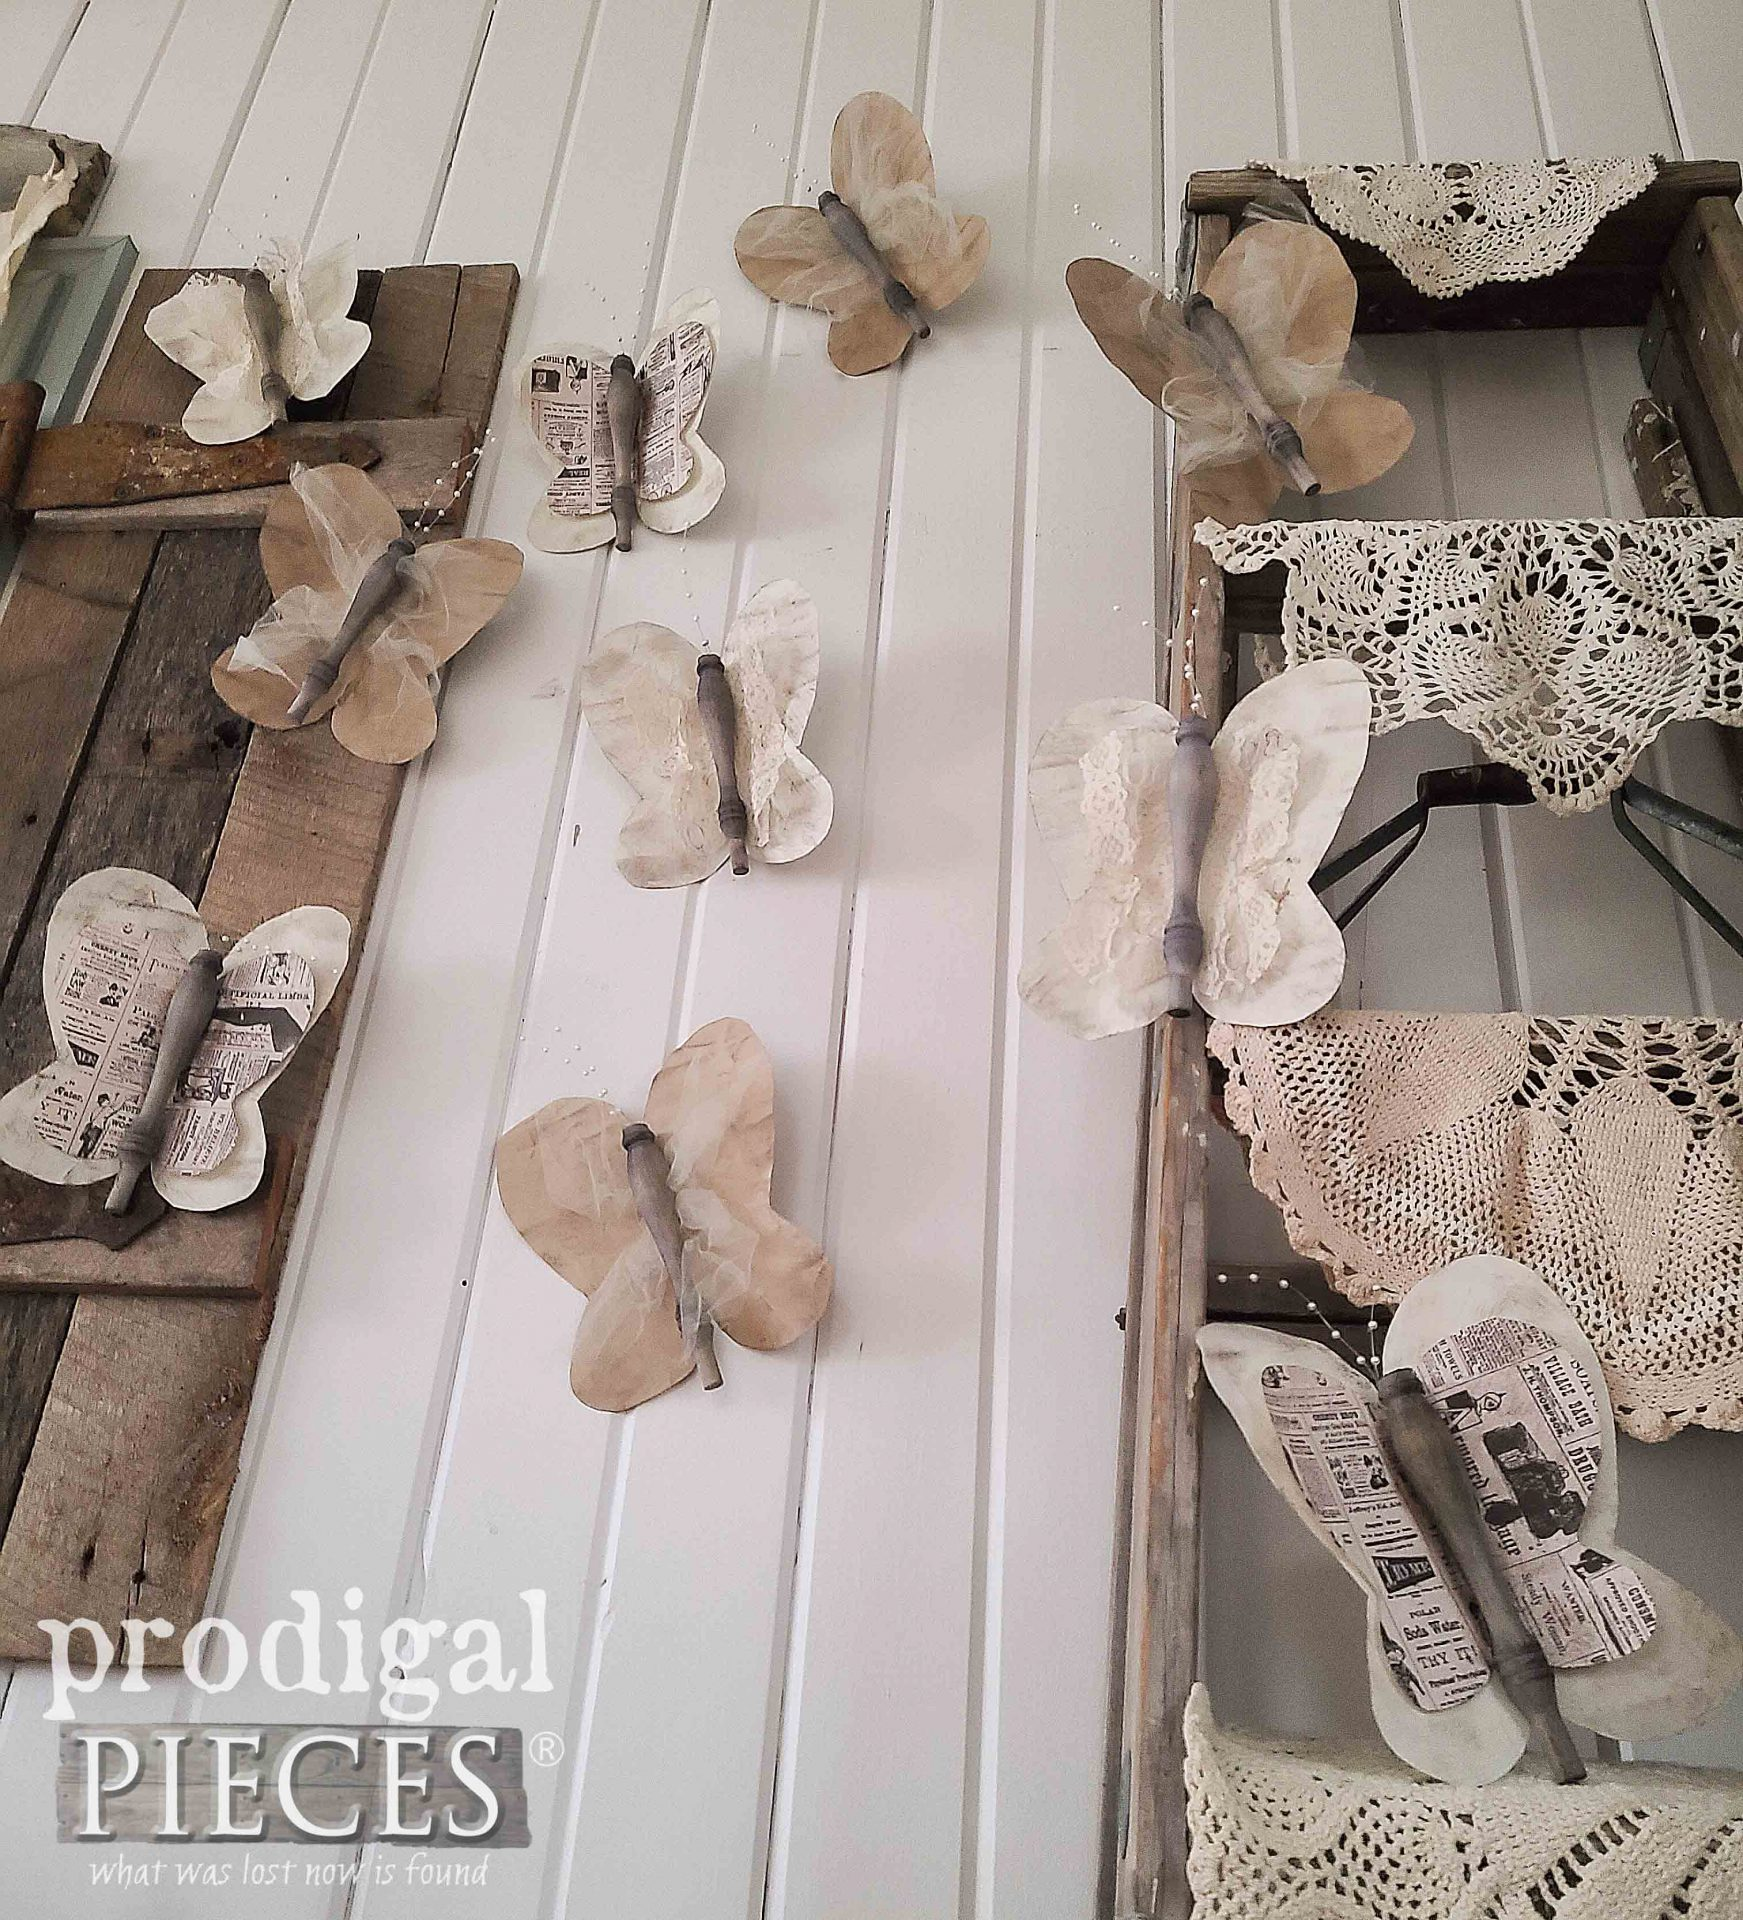 Handmade Butterflies from Upcycled Spindles by Larissa of Prodigal Pieces | prodigalpieces.com #prodigalpieces